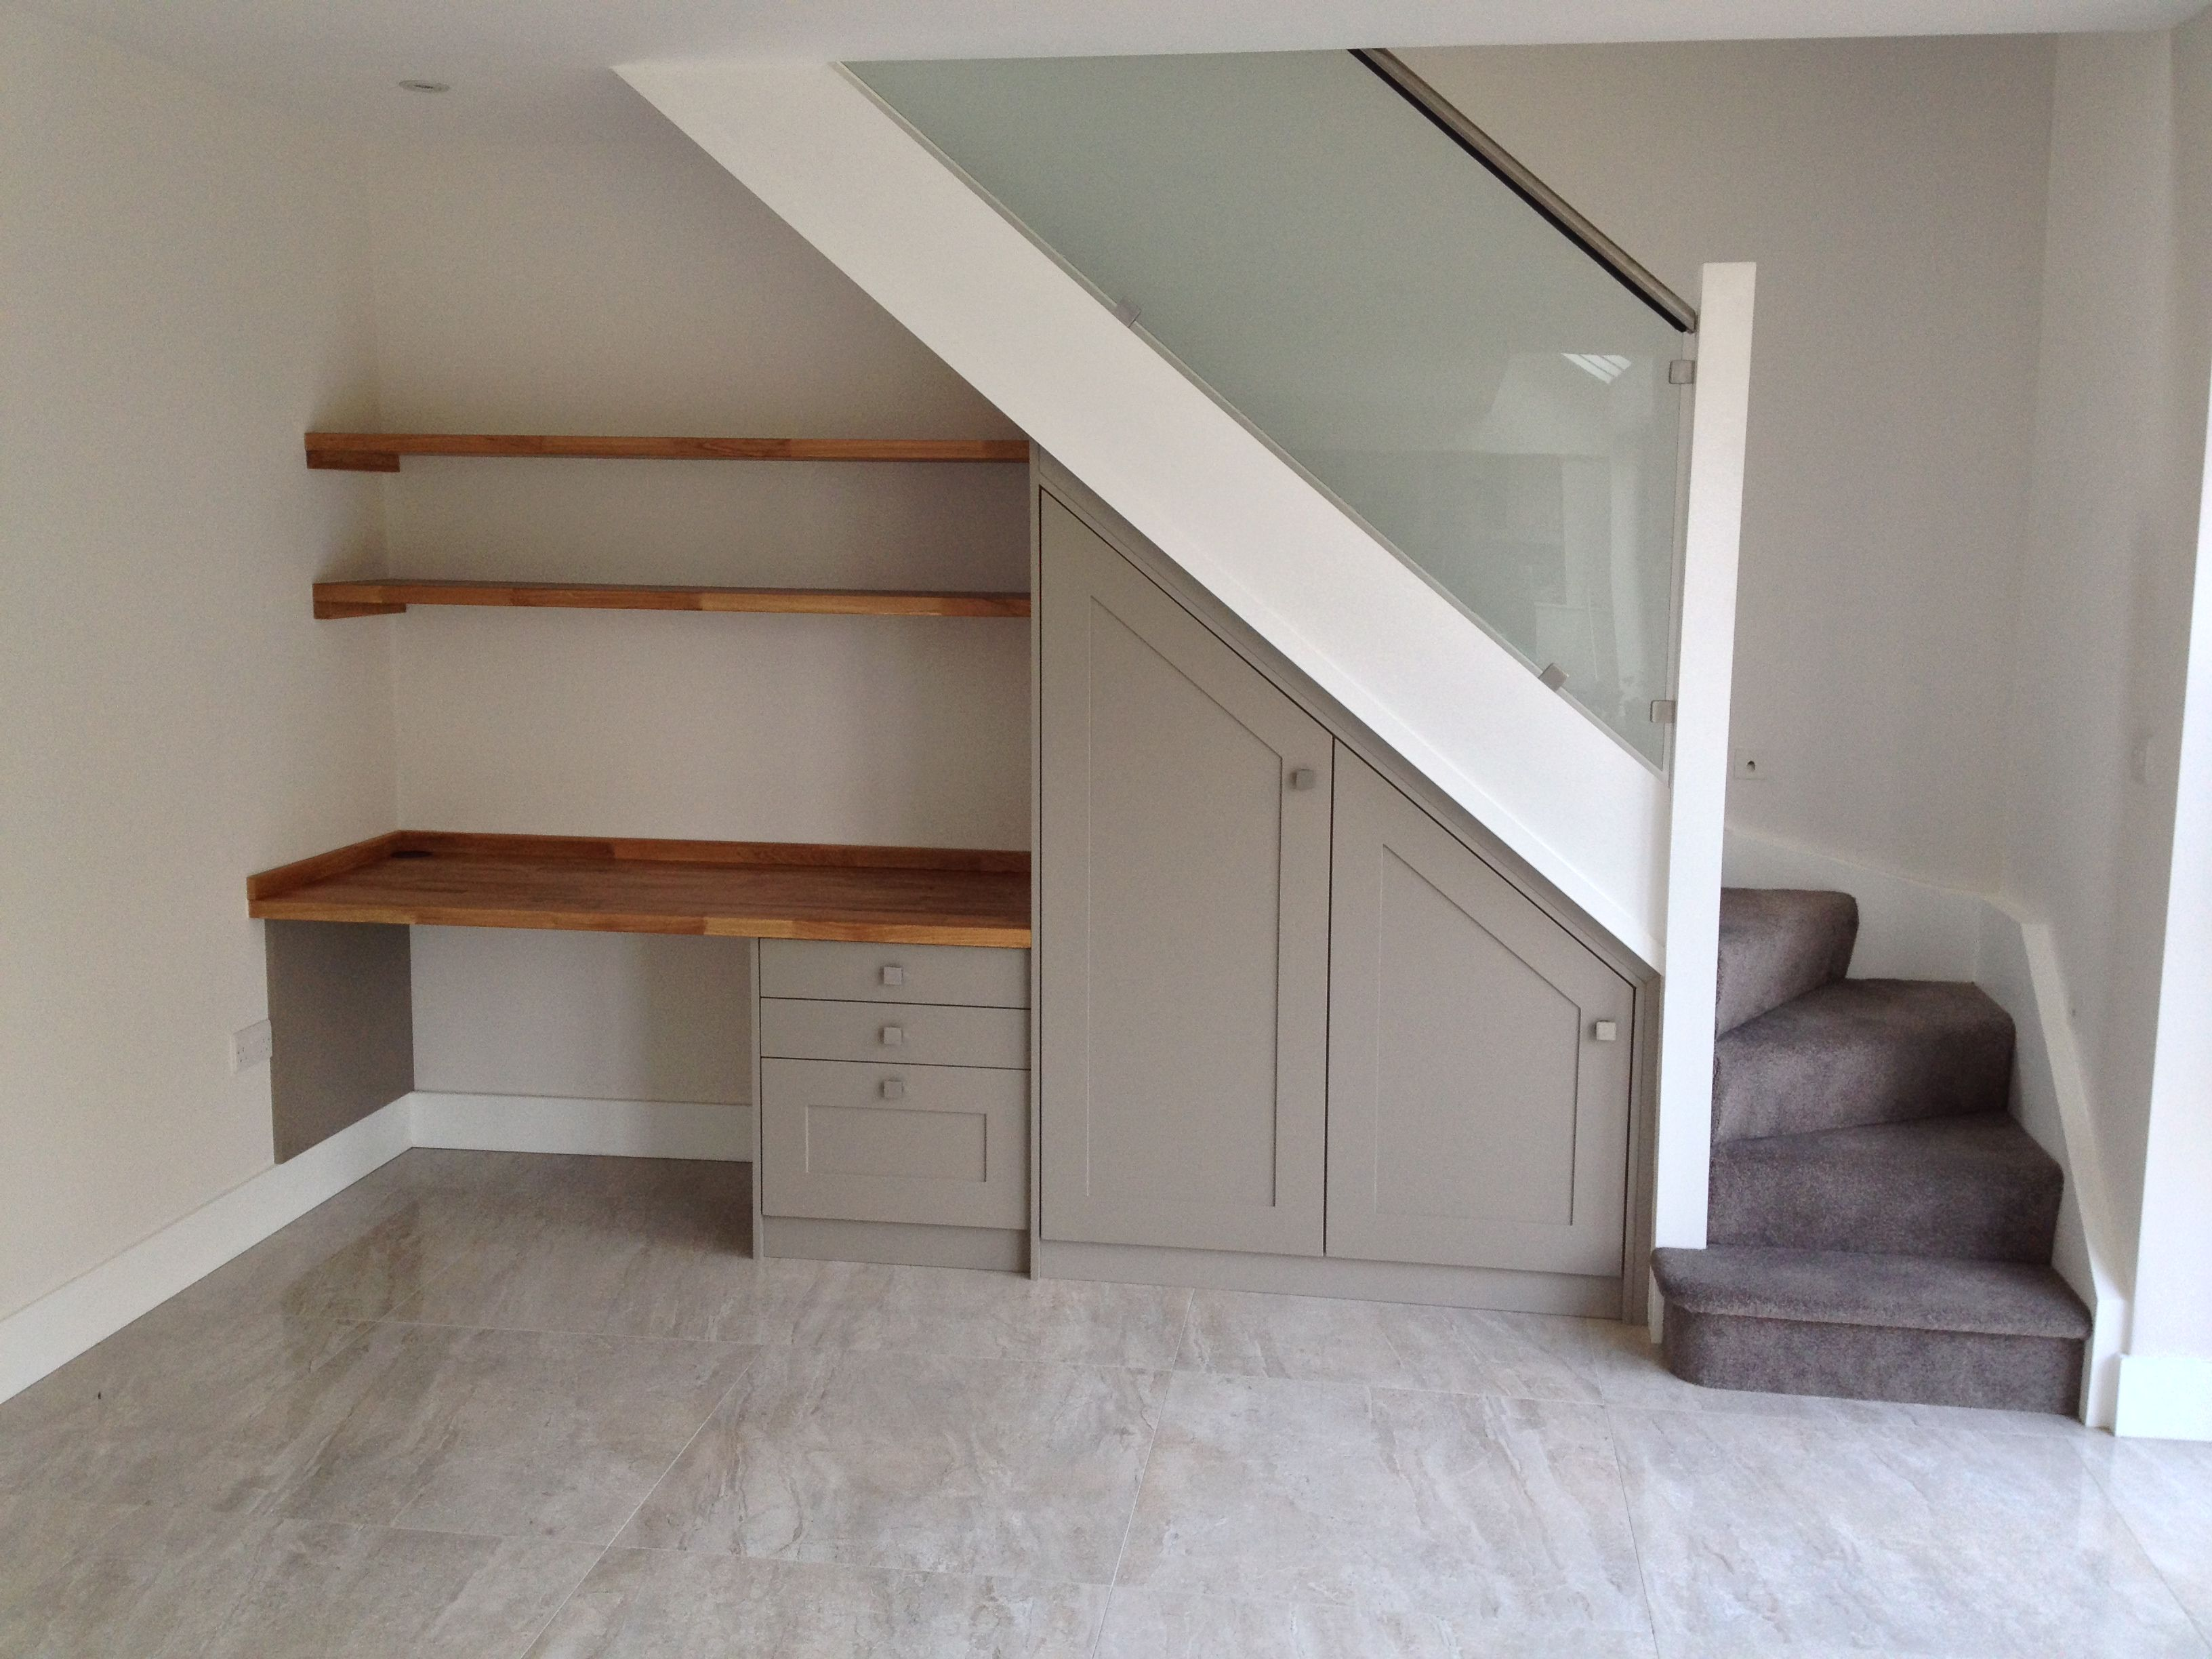 Under the stairs study/desk space. A great use of space ...